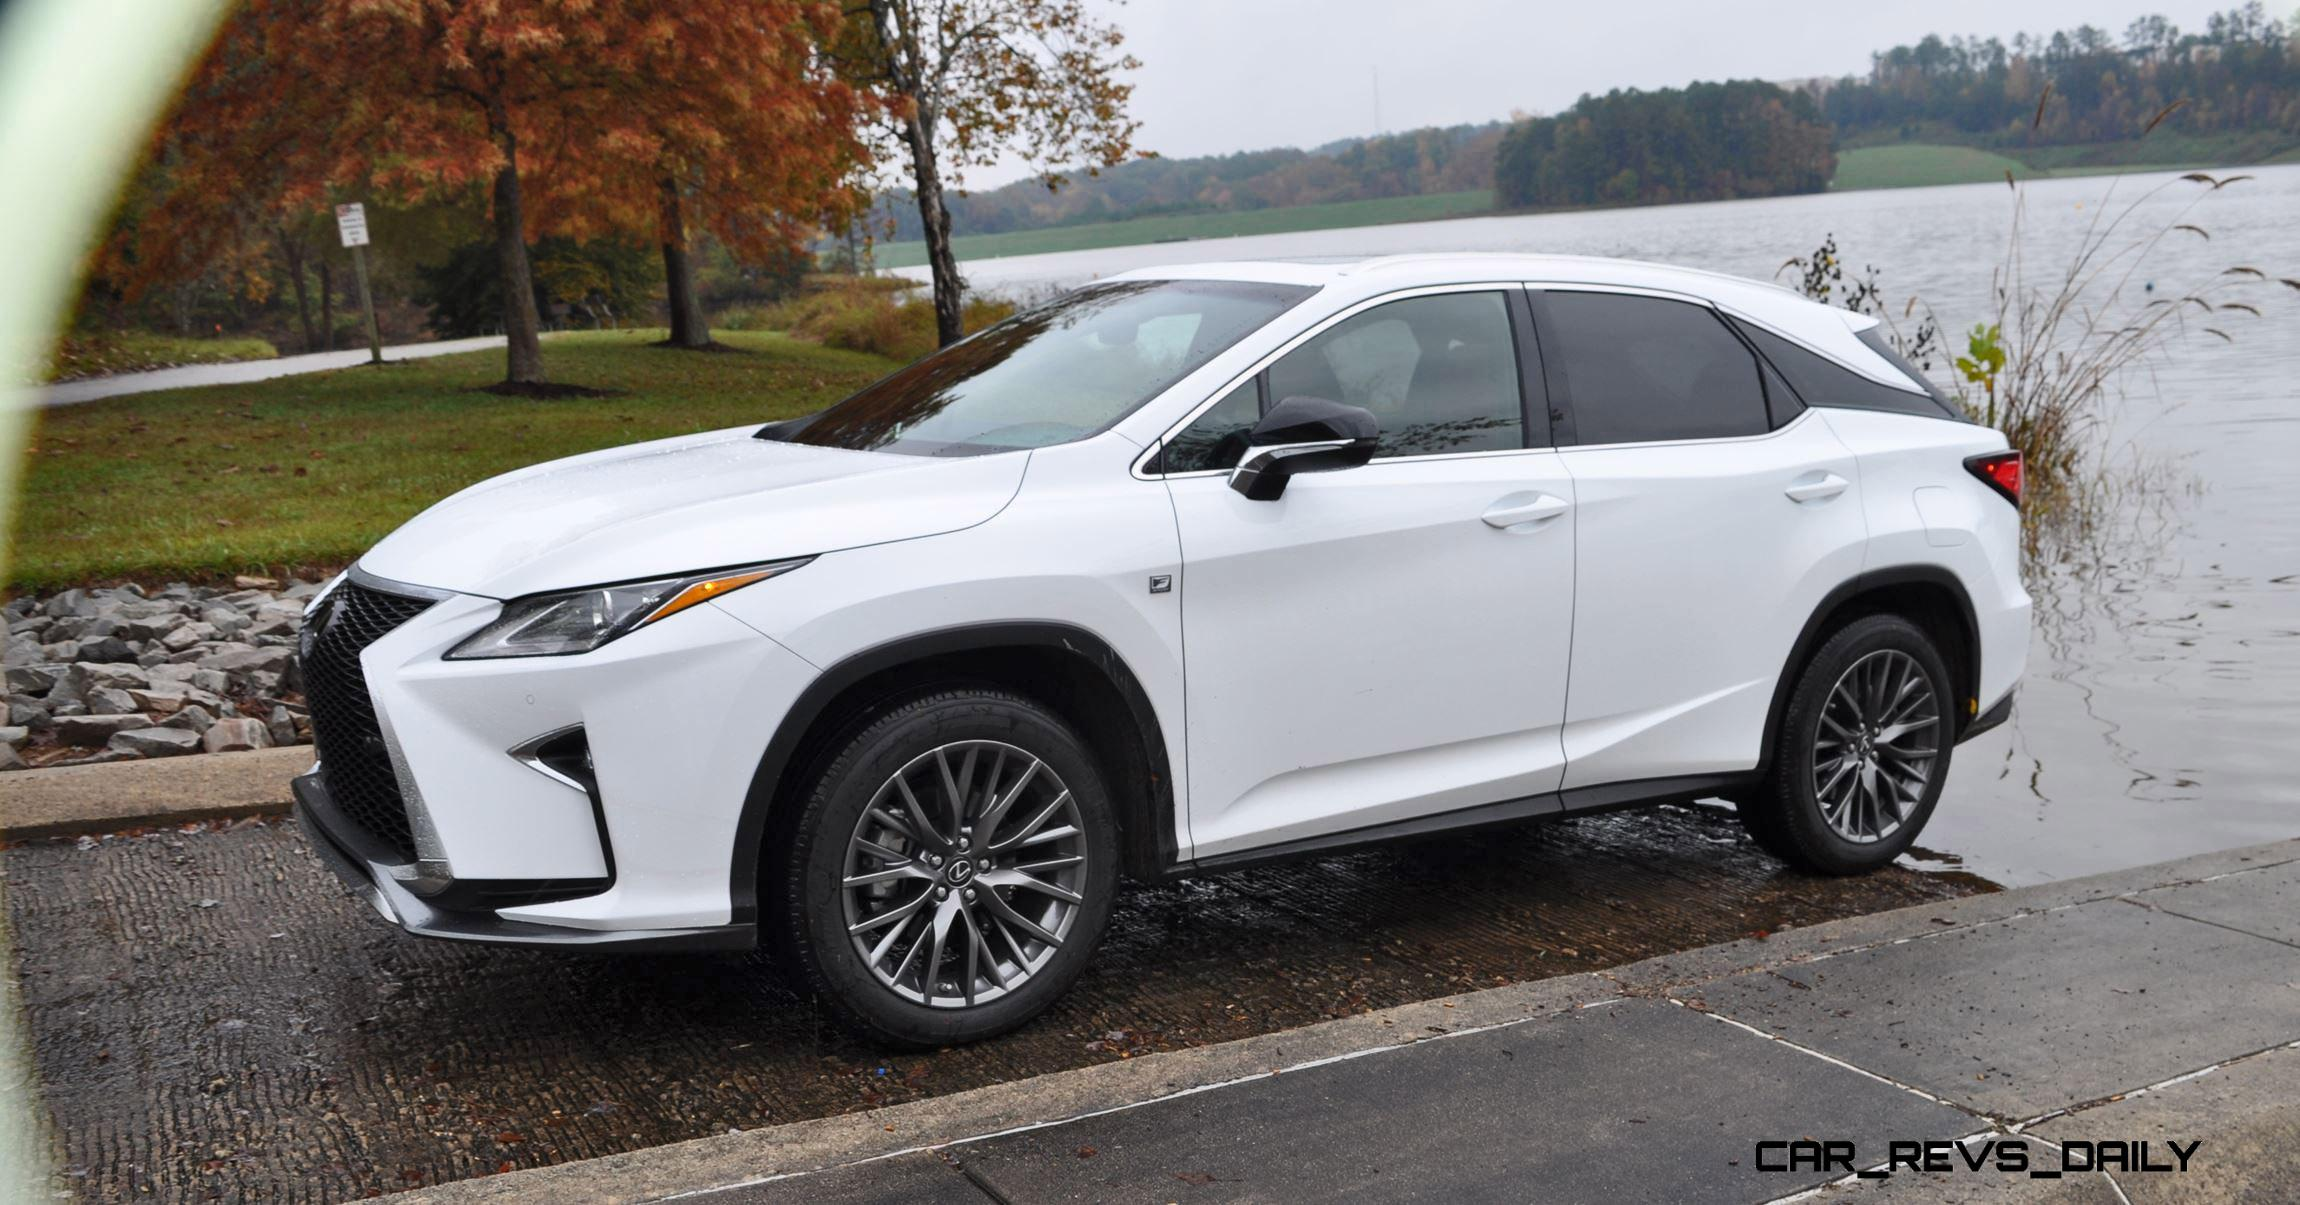 2016 lexus rx reviews roundup 150 all new rx350 f sport photos in ultra white. Black Bedroom Furniture Sets. Home Design Ideas